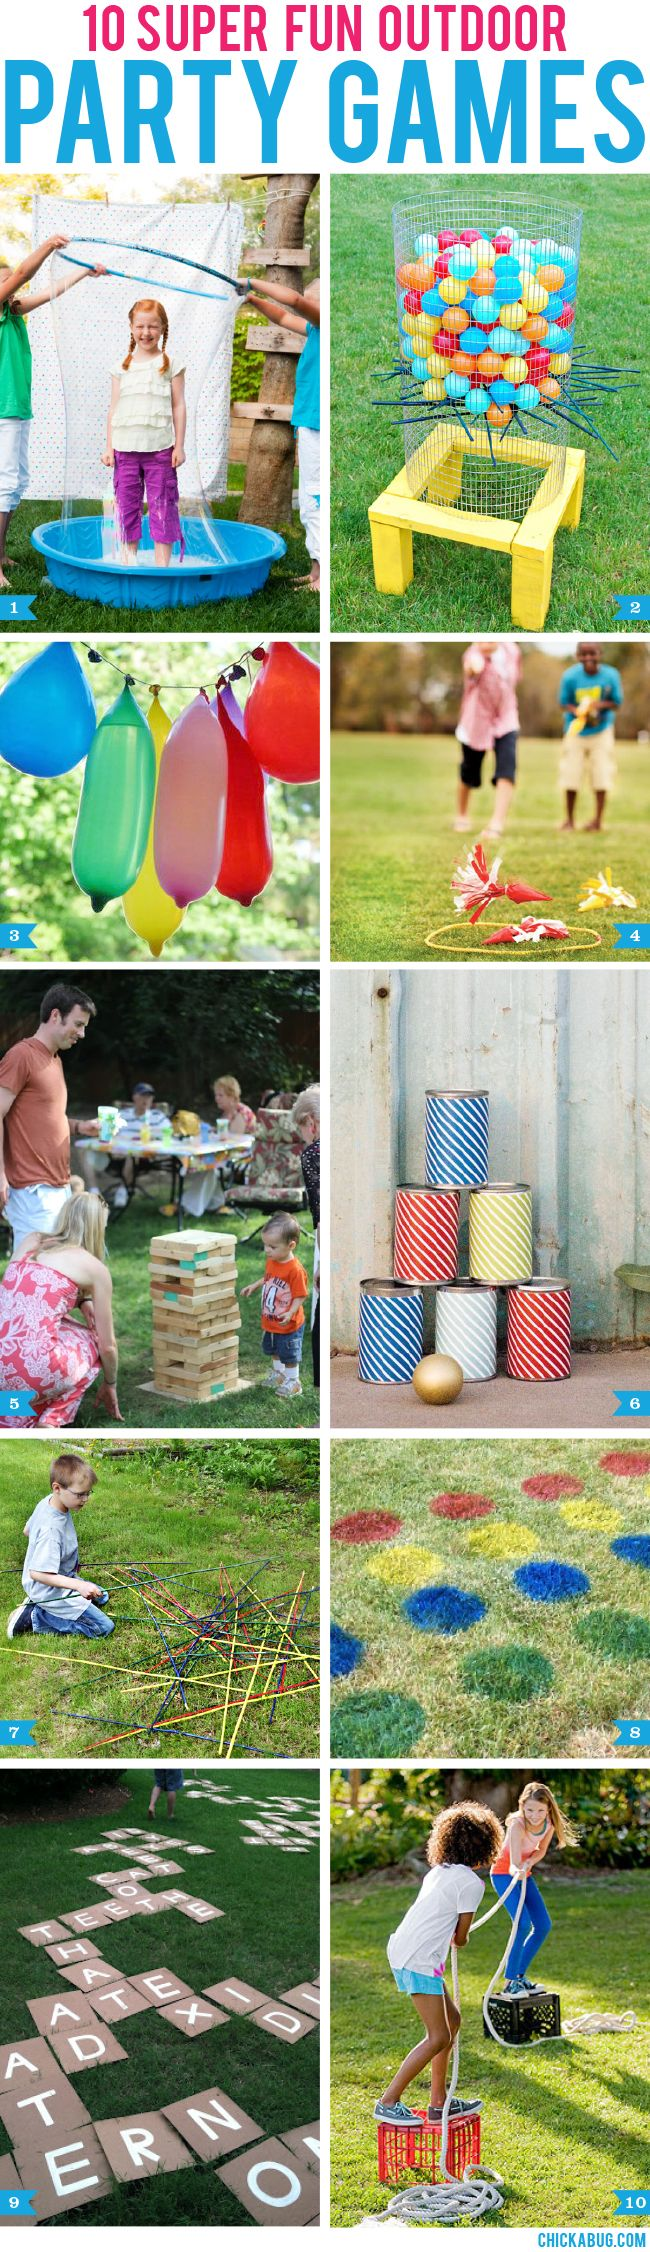 10 super fun outdoor party games